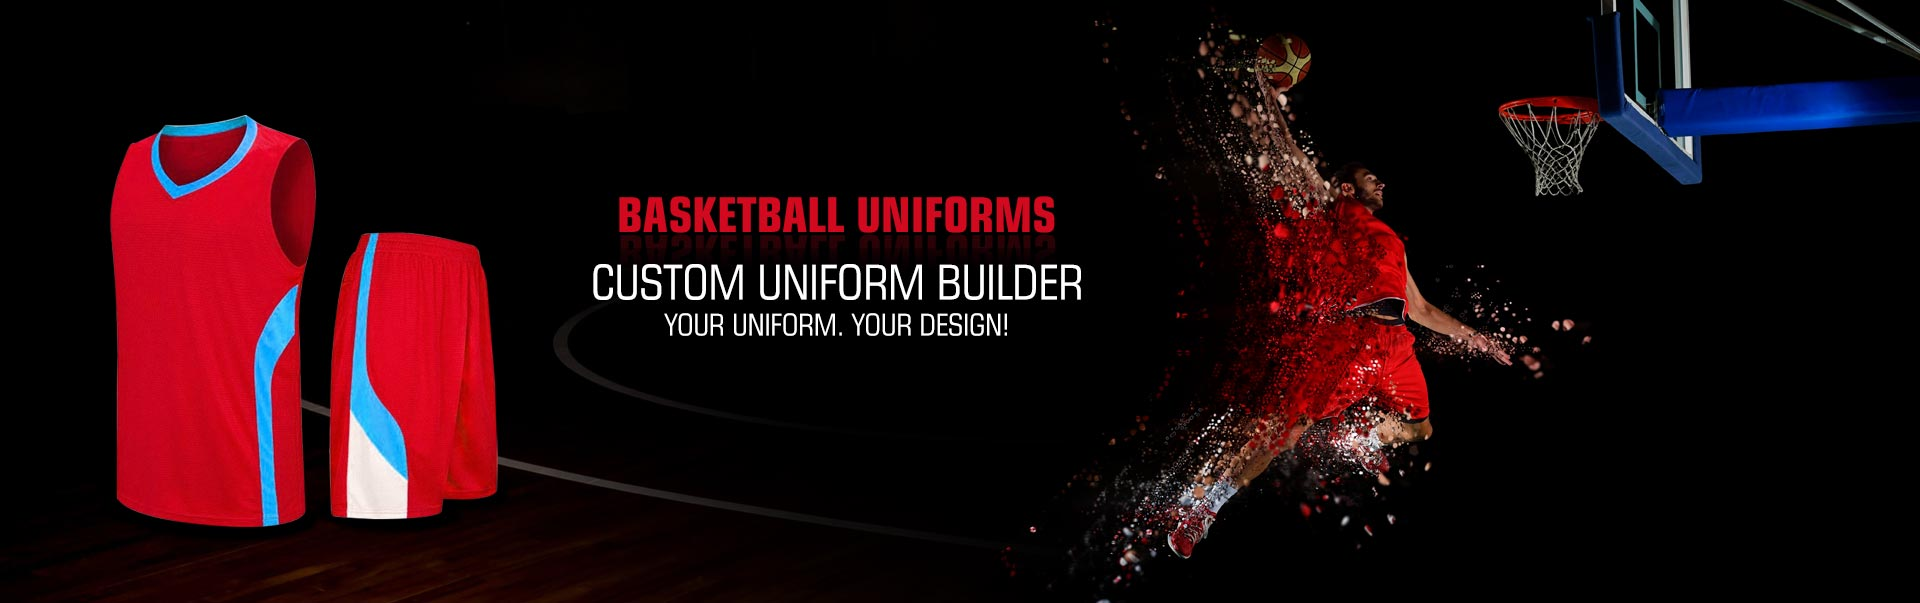 Basketball Uniforms Wholesaler, Suppliers in Naberezhnye Chelny